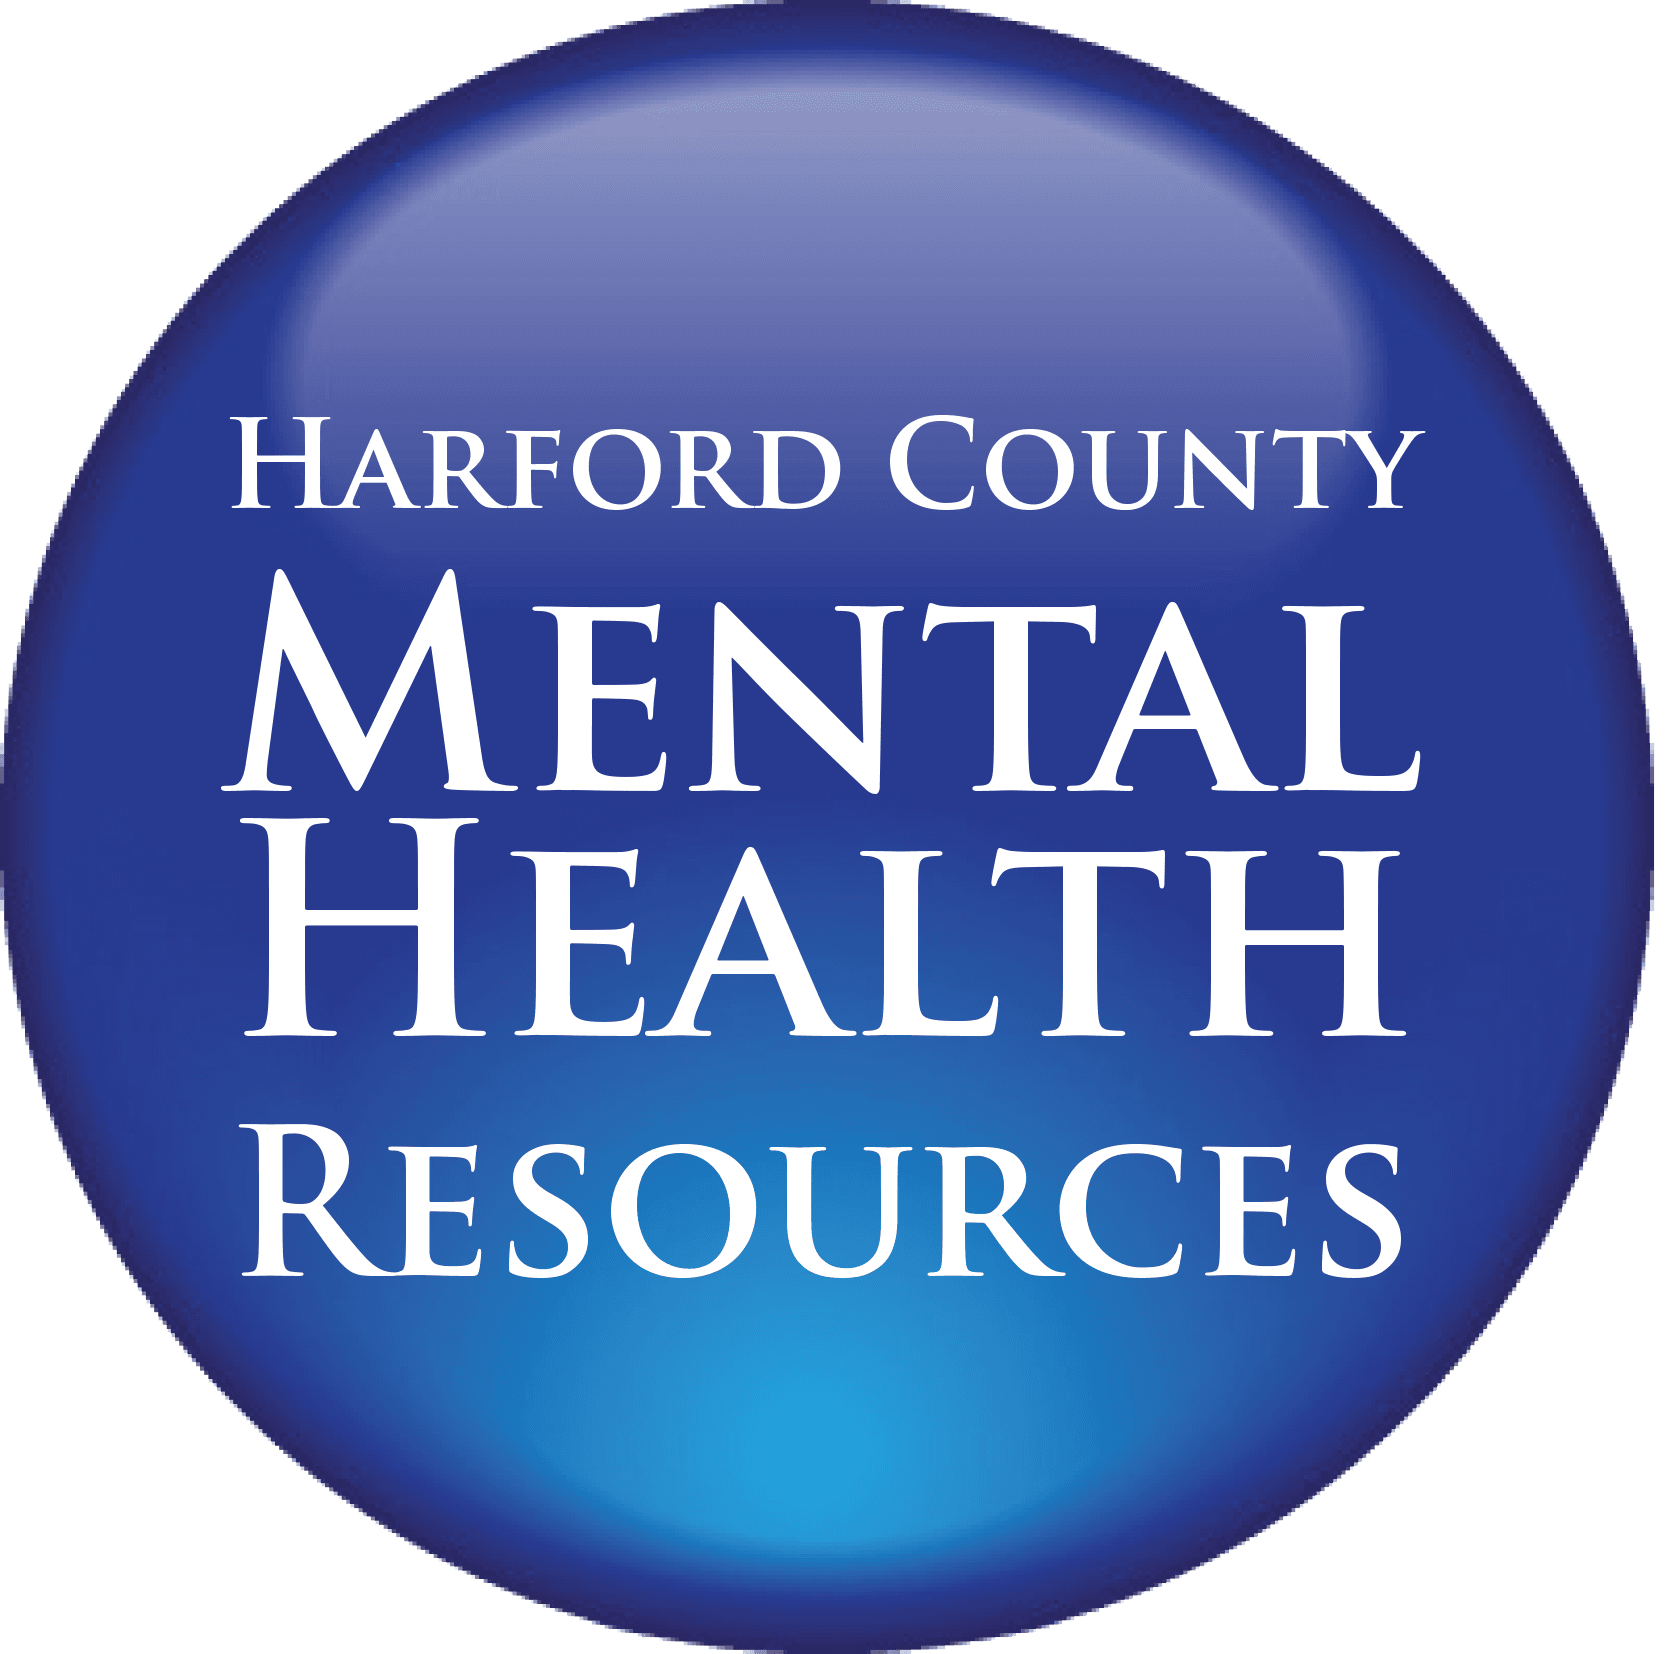 mental health resources web button